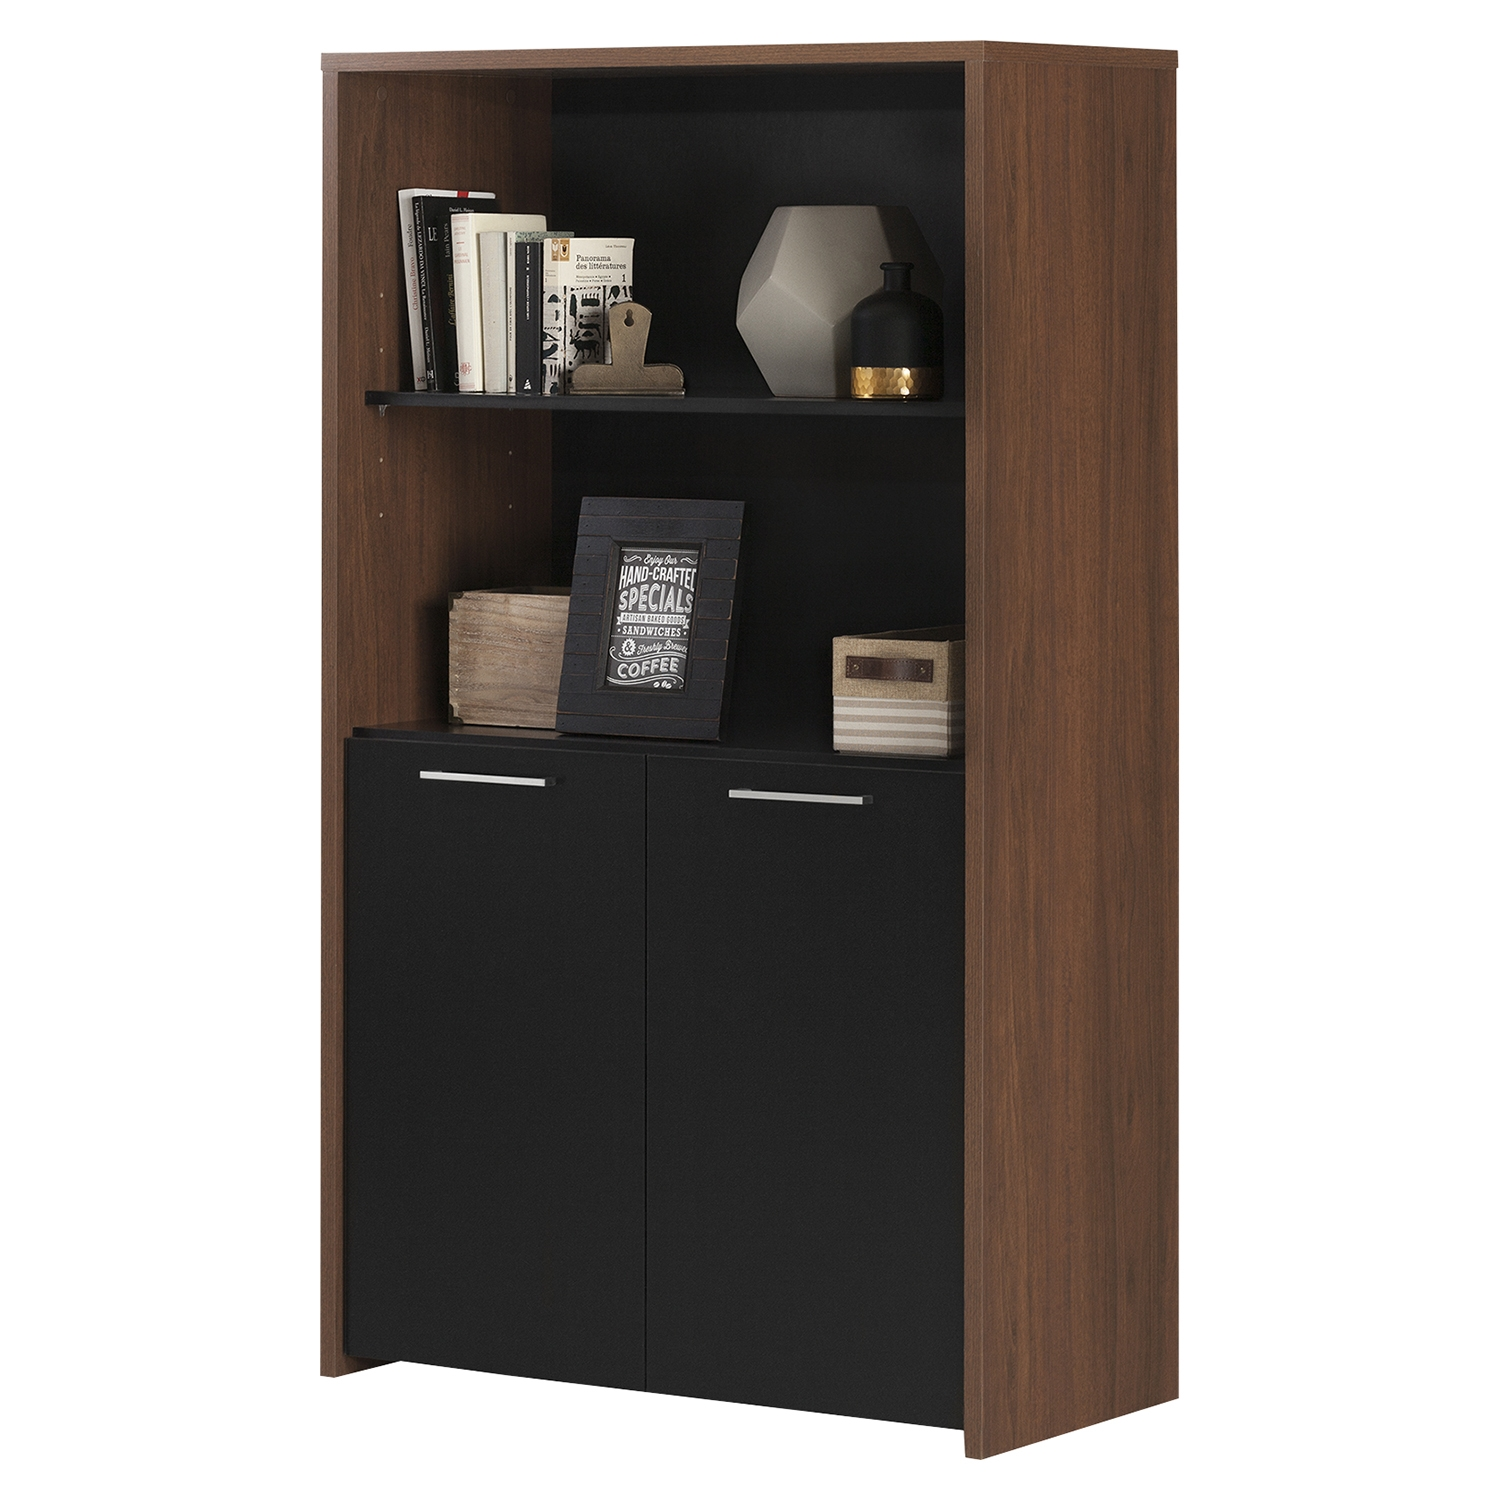 Tasko Storage Bookcase - 2 Doors, Brown Walnut, Pure Black - SS-10392